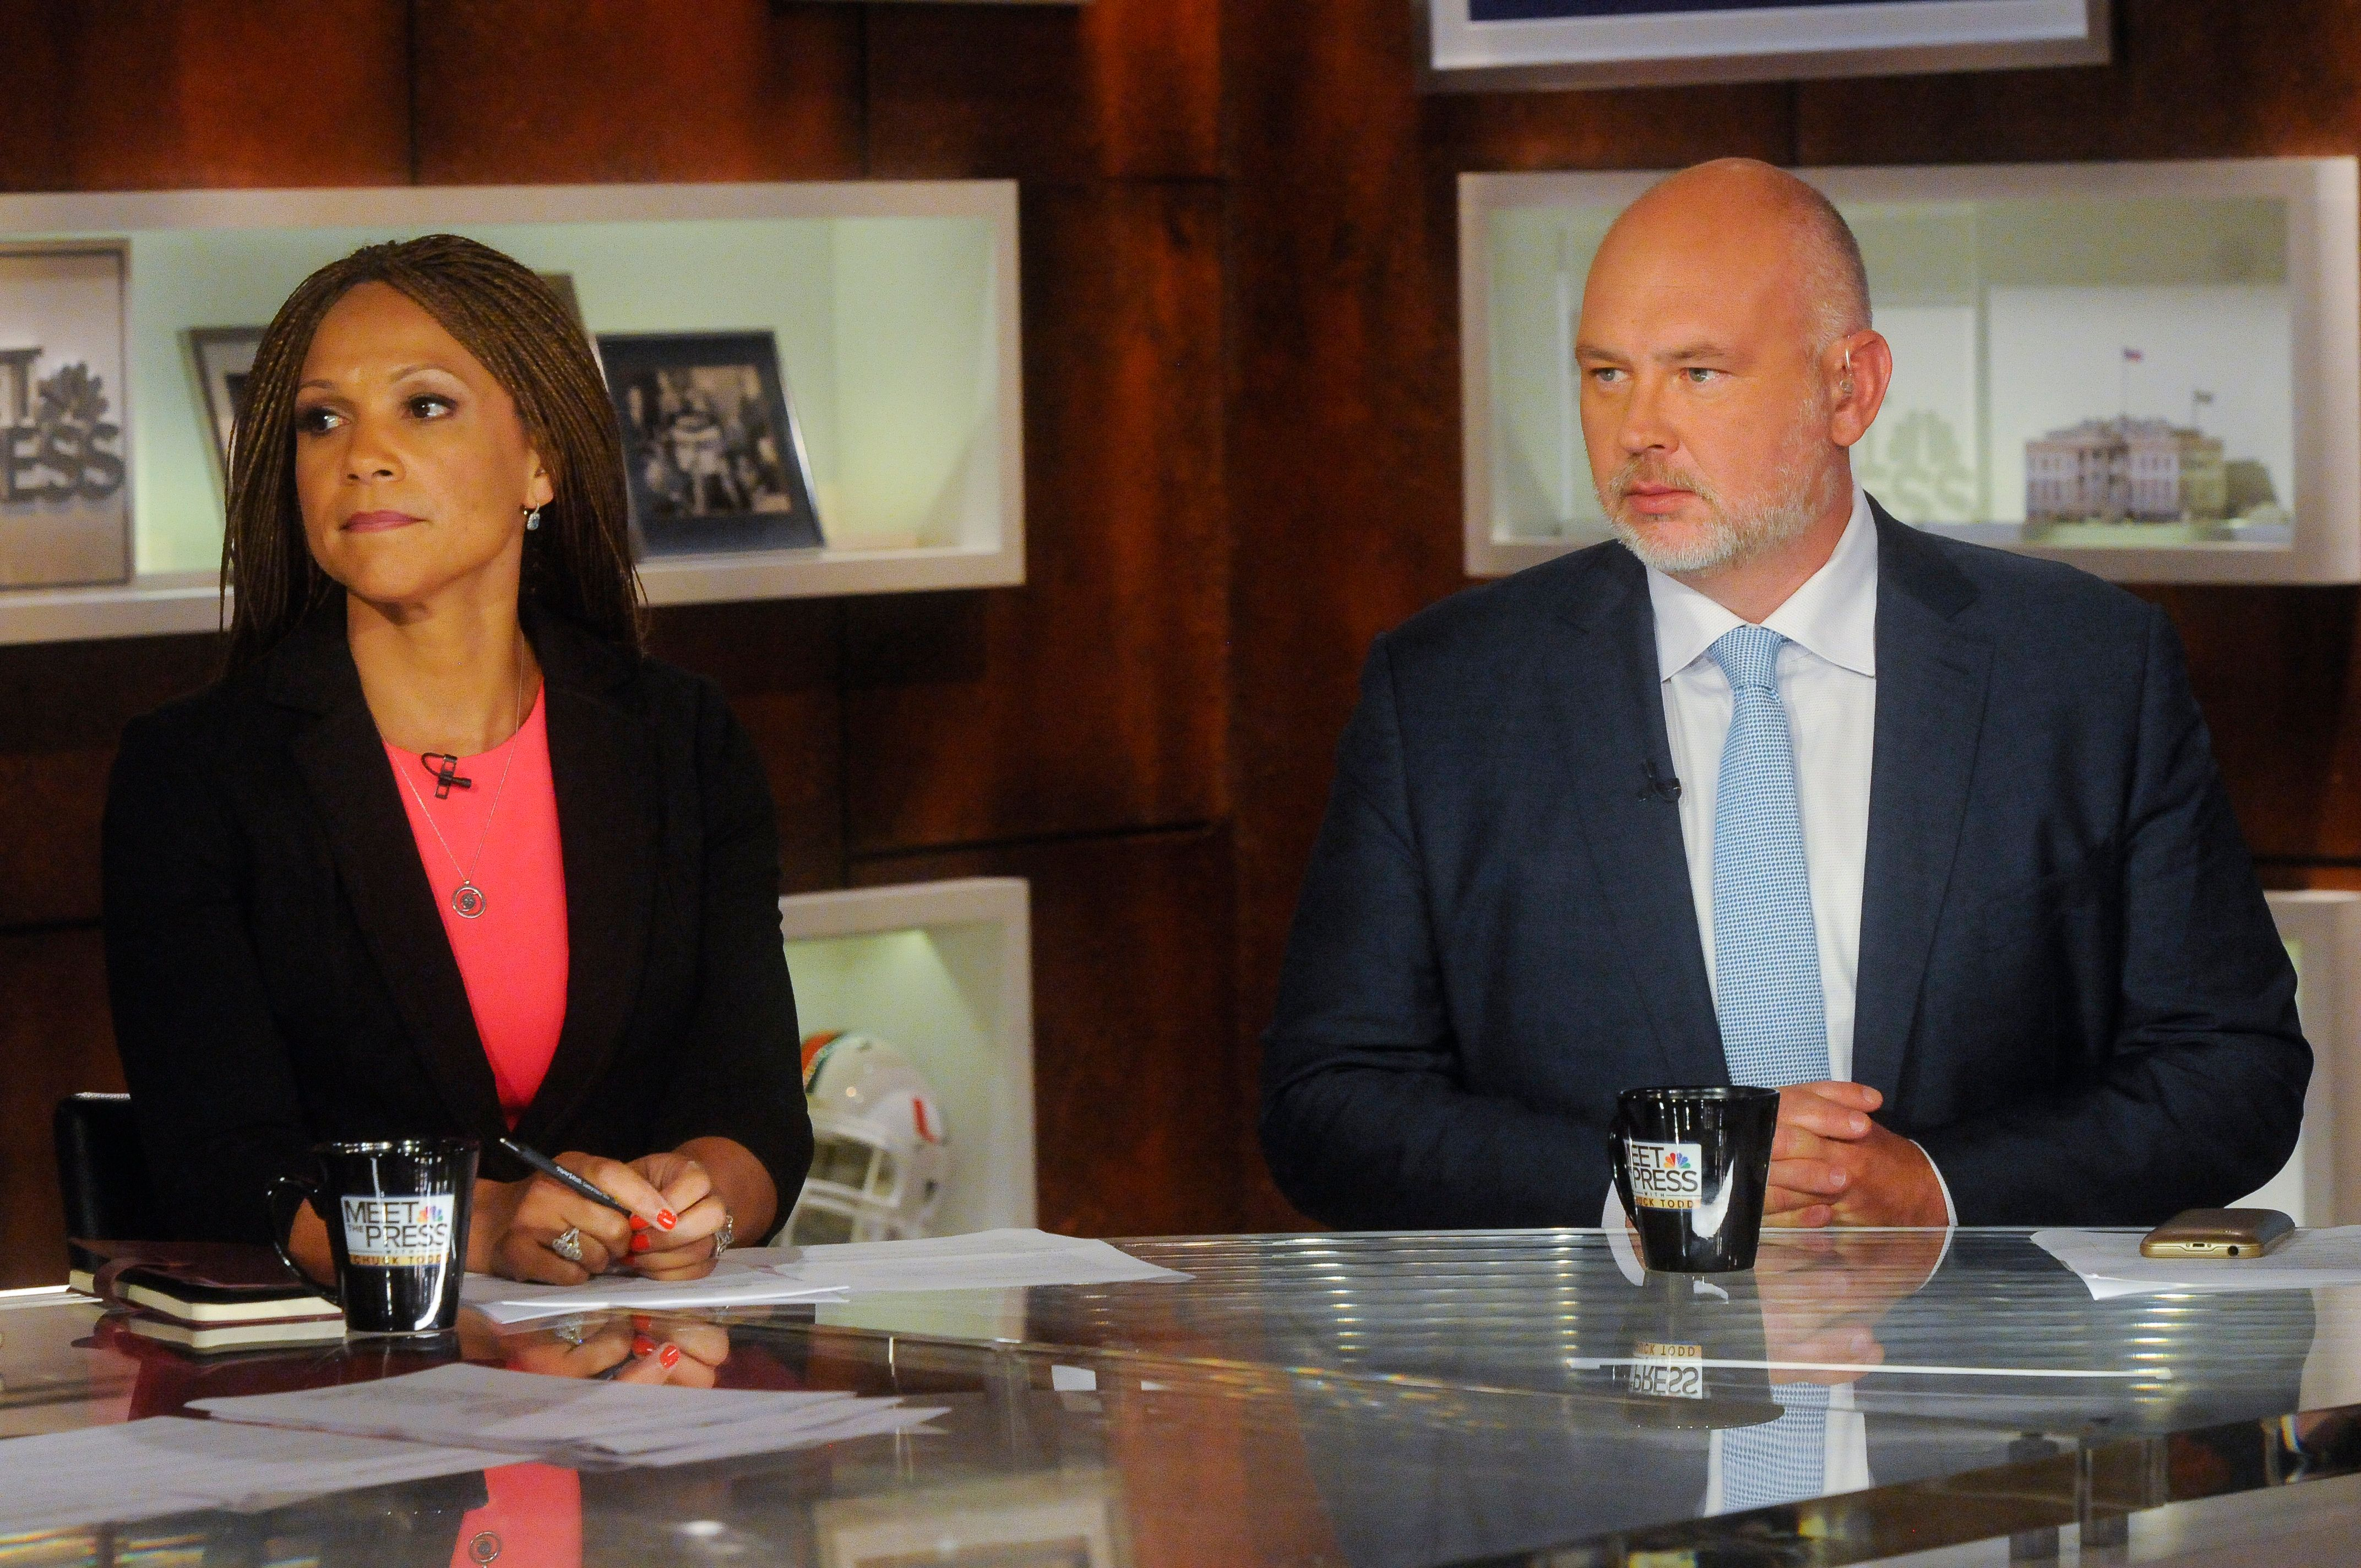 MEET THE PRESS -- Pictured: (l-r)  Melissa Harris-Perry, Host, MSNBCs Melissa-Harris Perry,' left, and Steve Schmidt, Republican Strategist, right, appear on 'Meet the Press' in Washington, D.C., Sunday Aug, 30, 2015.  (Photo by: William B. Plowman/NBC/NBC NewsWire via Getty Images)